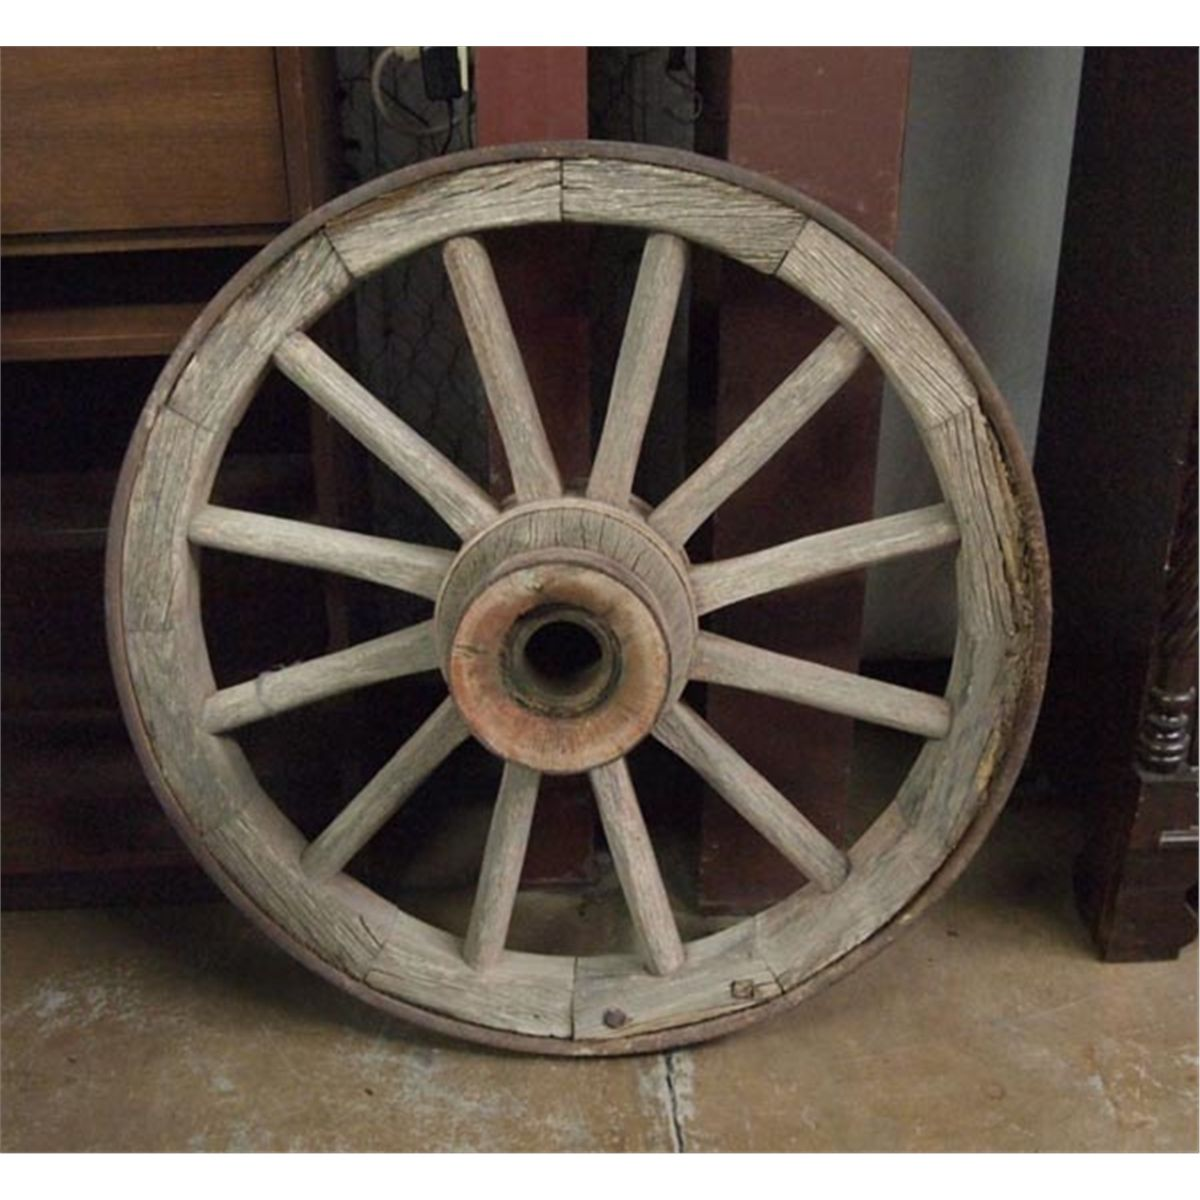 Wagon Wheel eBay 17